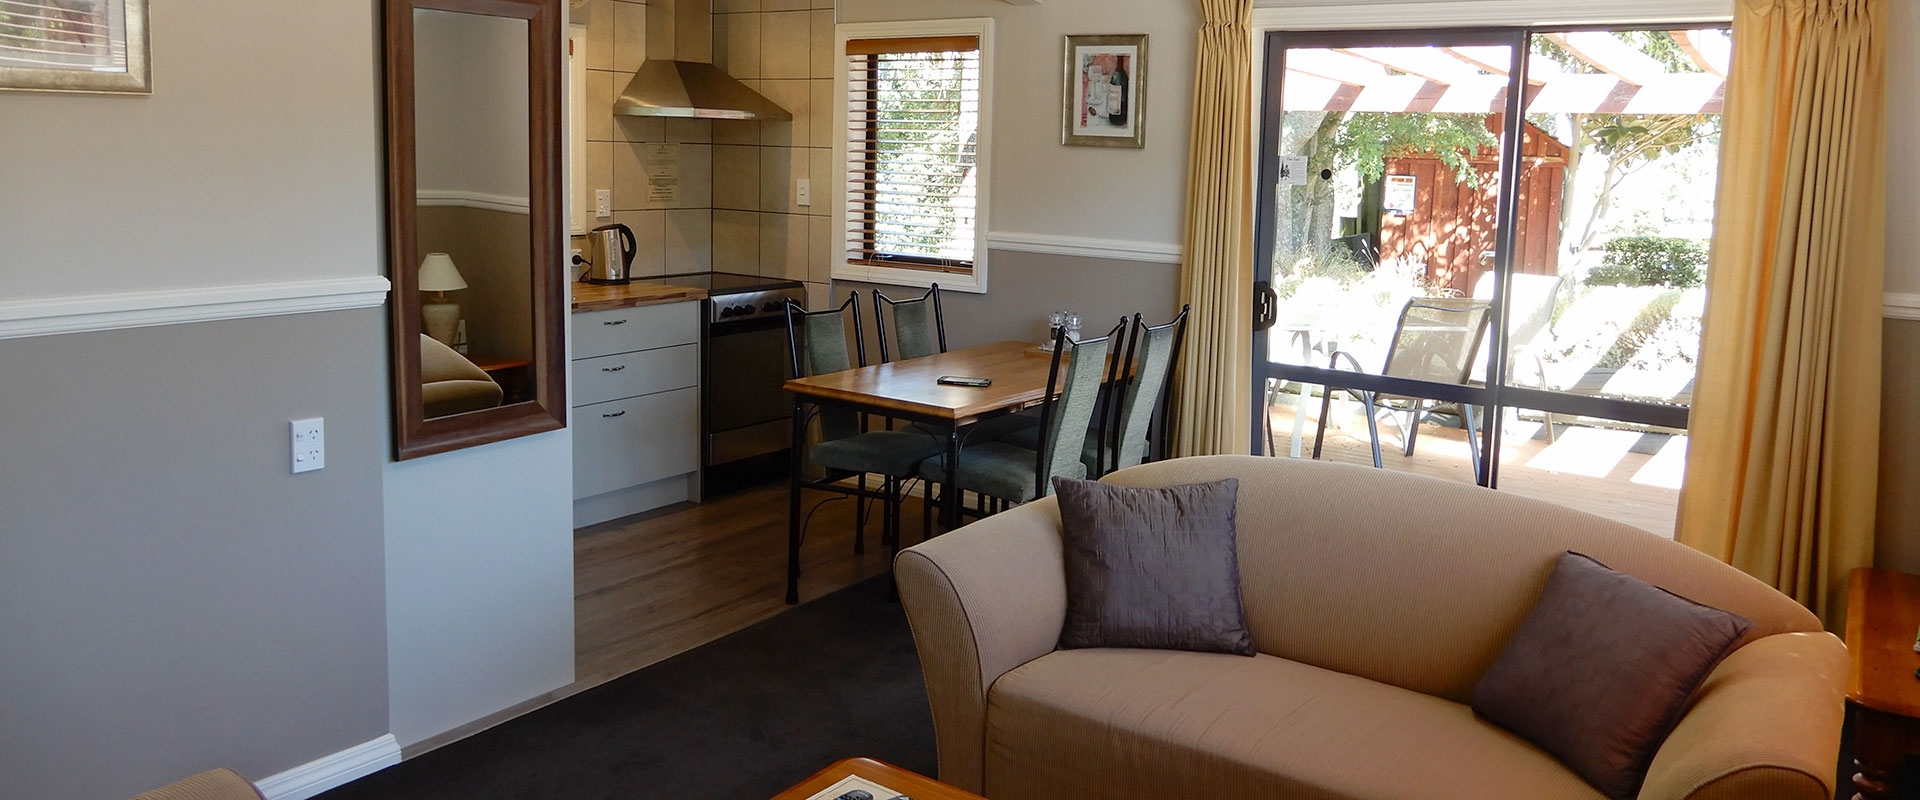 hanmer springs accommodation